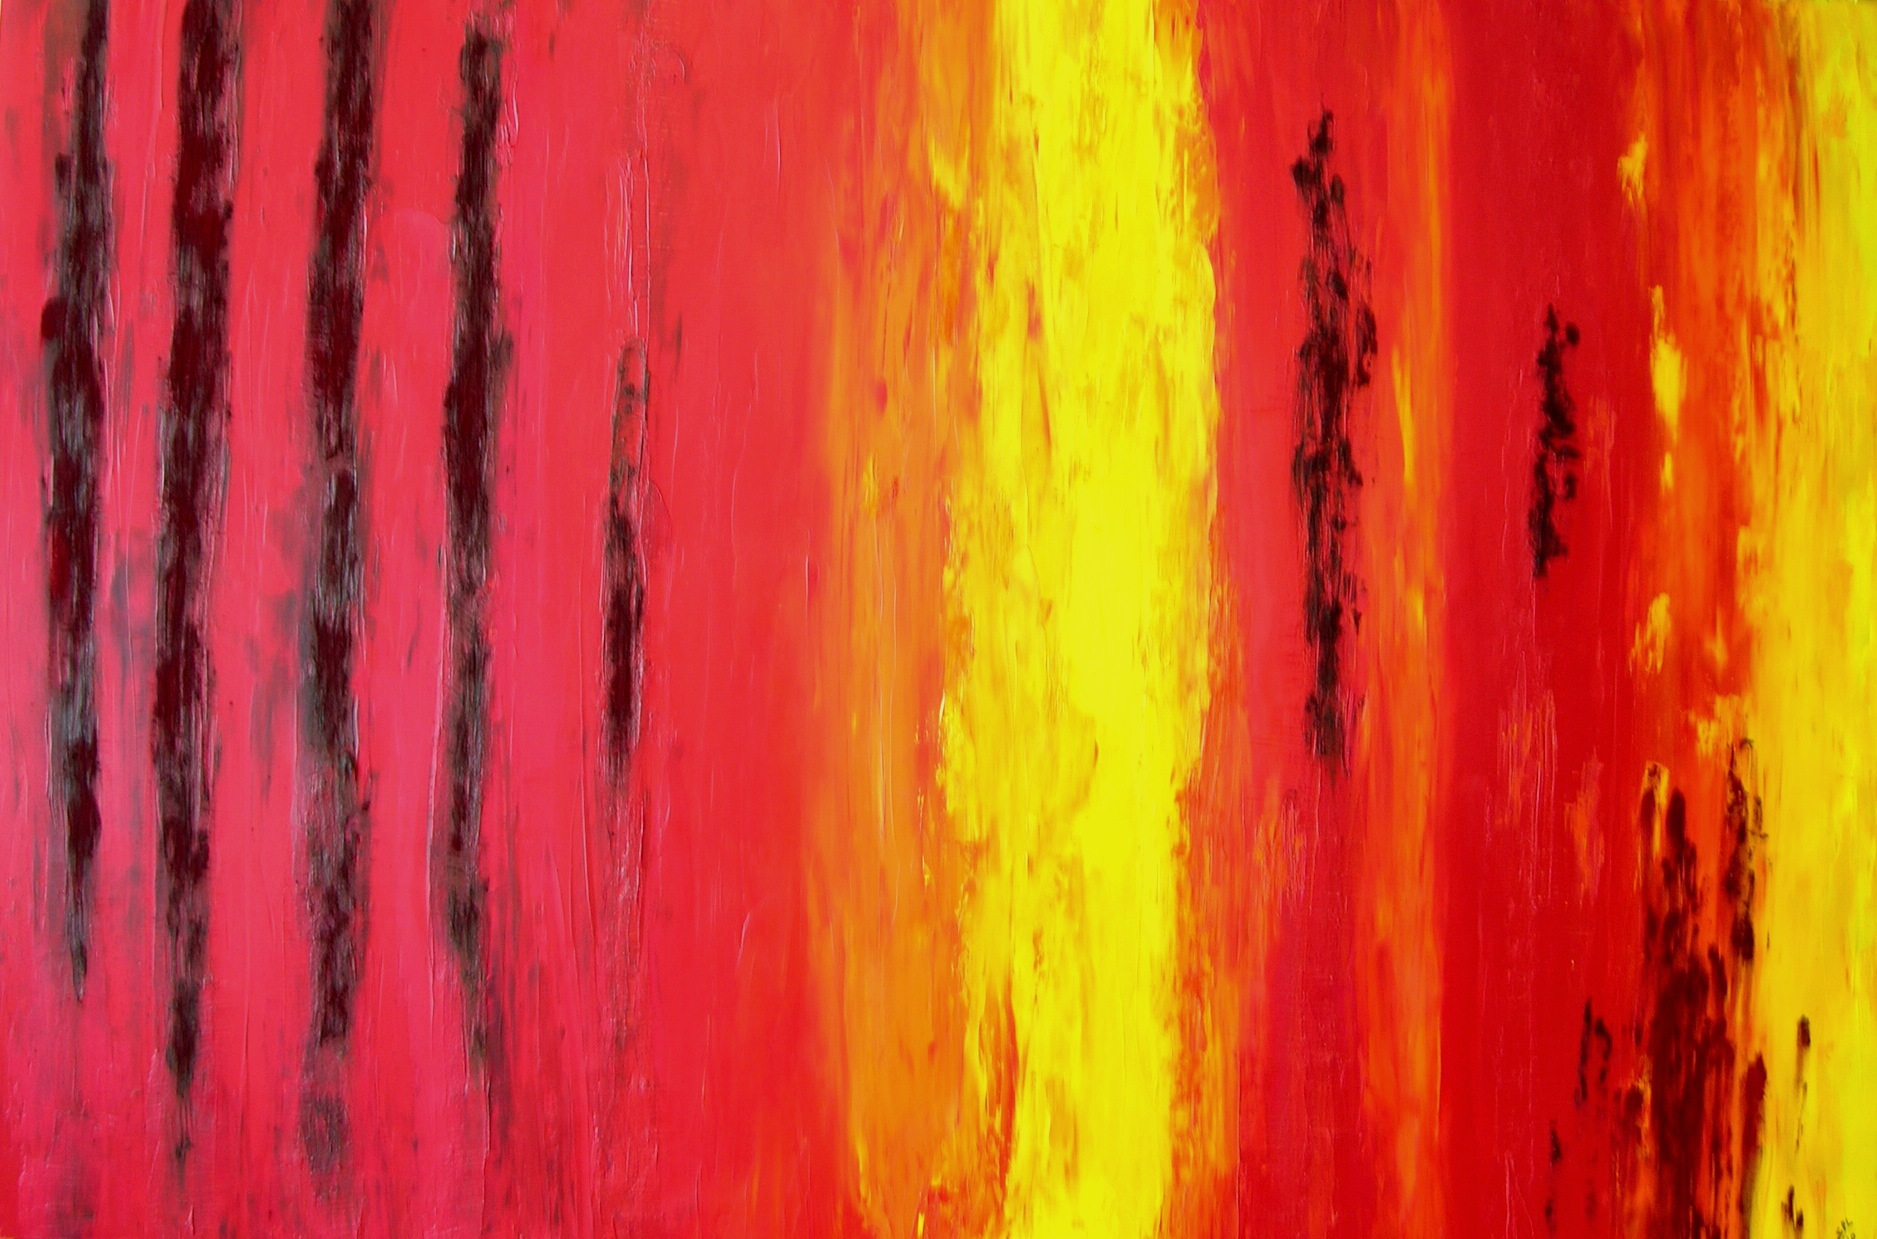 Wildfire Devastated abstract painting by Sabrina Puppin